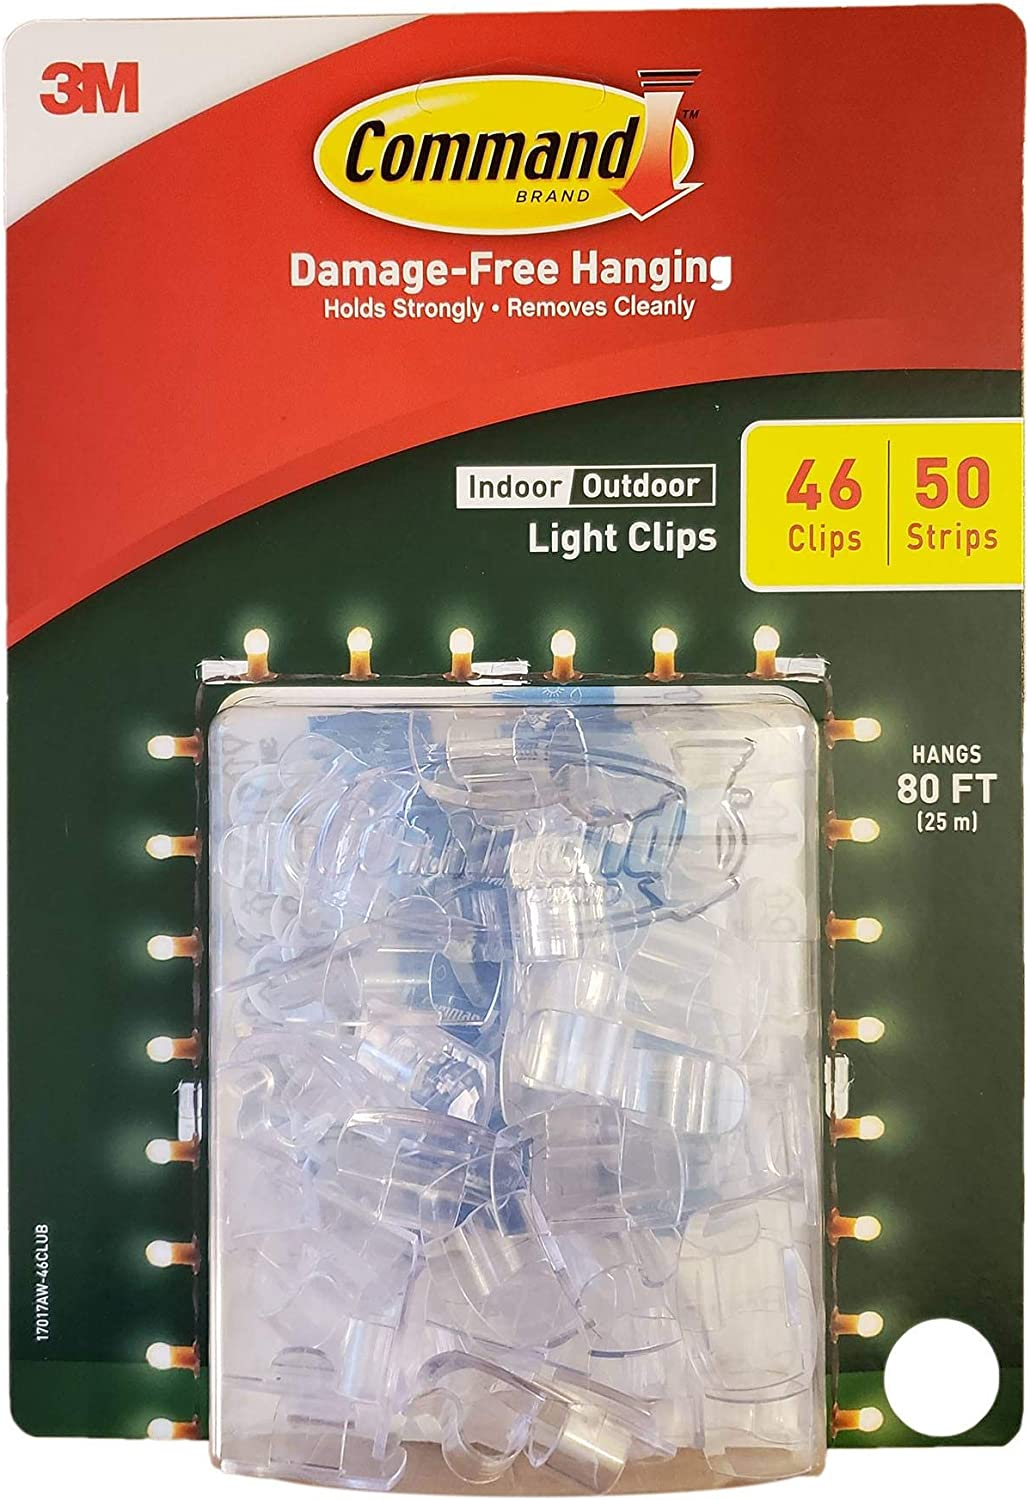 Command Indoor Outdoor Light Clips with 46 Clips 50 Strips Hangs 80 ft